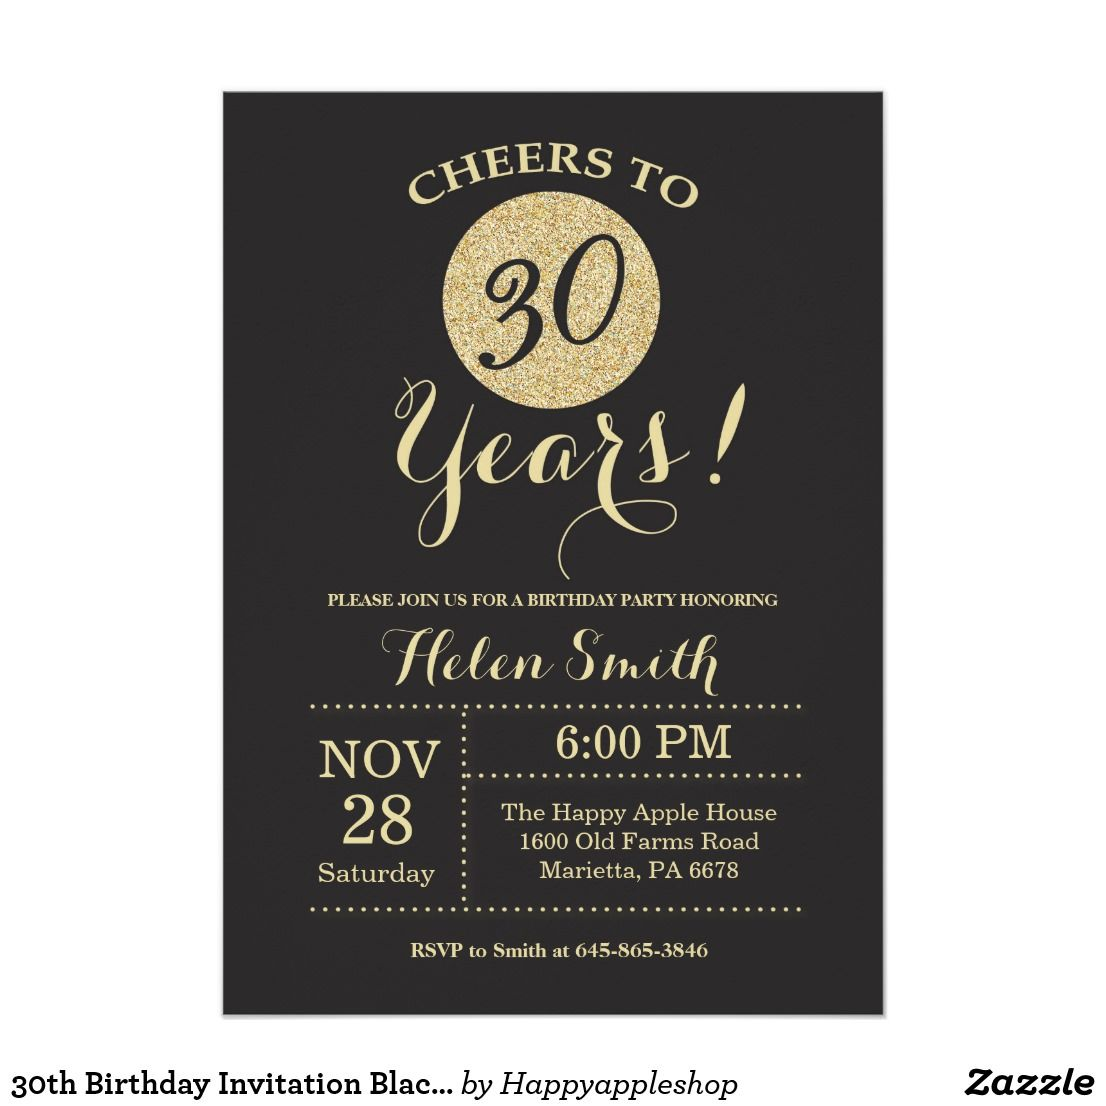 30th Birthday Invitation Black And Gold Glitter Card For Further Customization Please Click The Customize